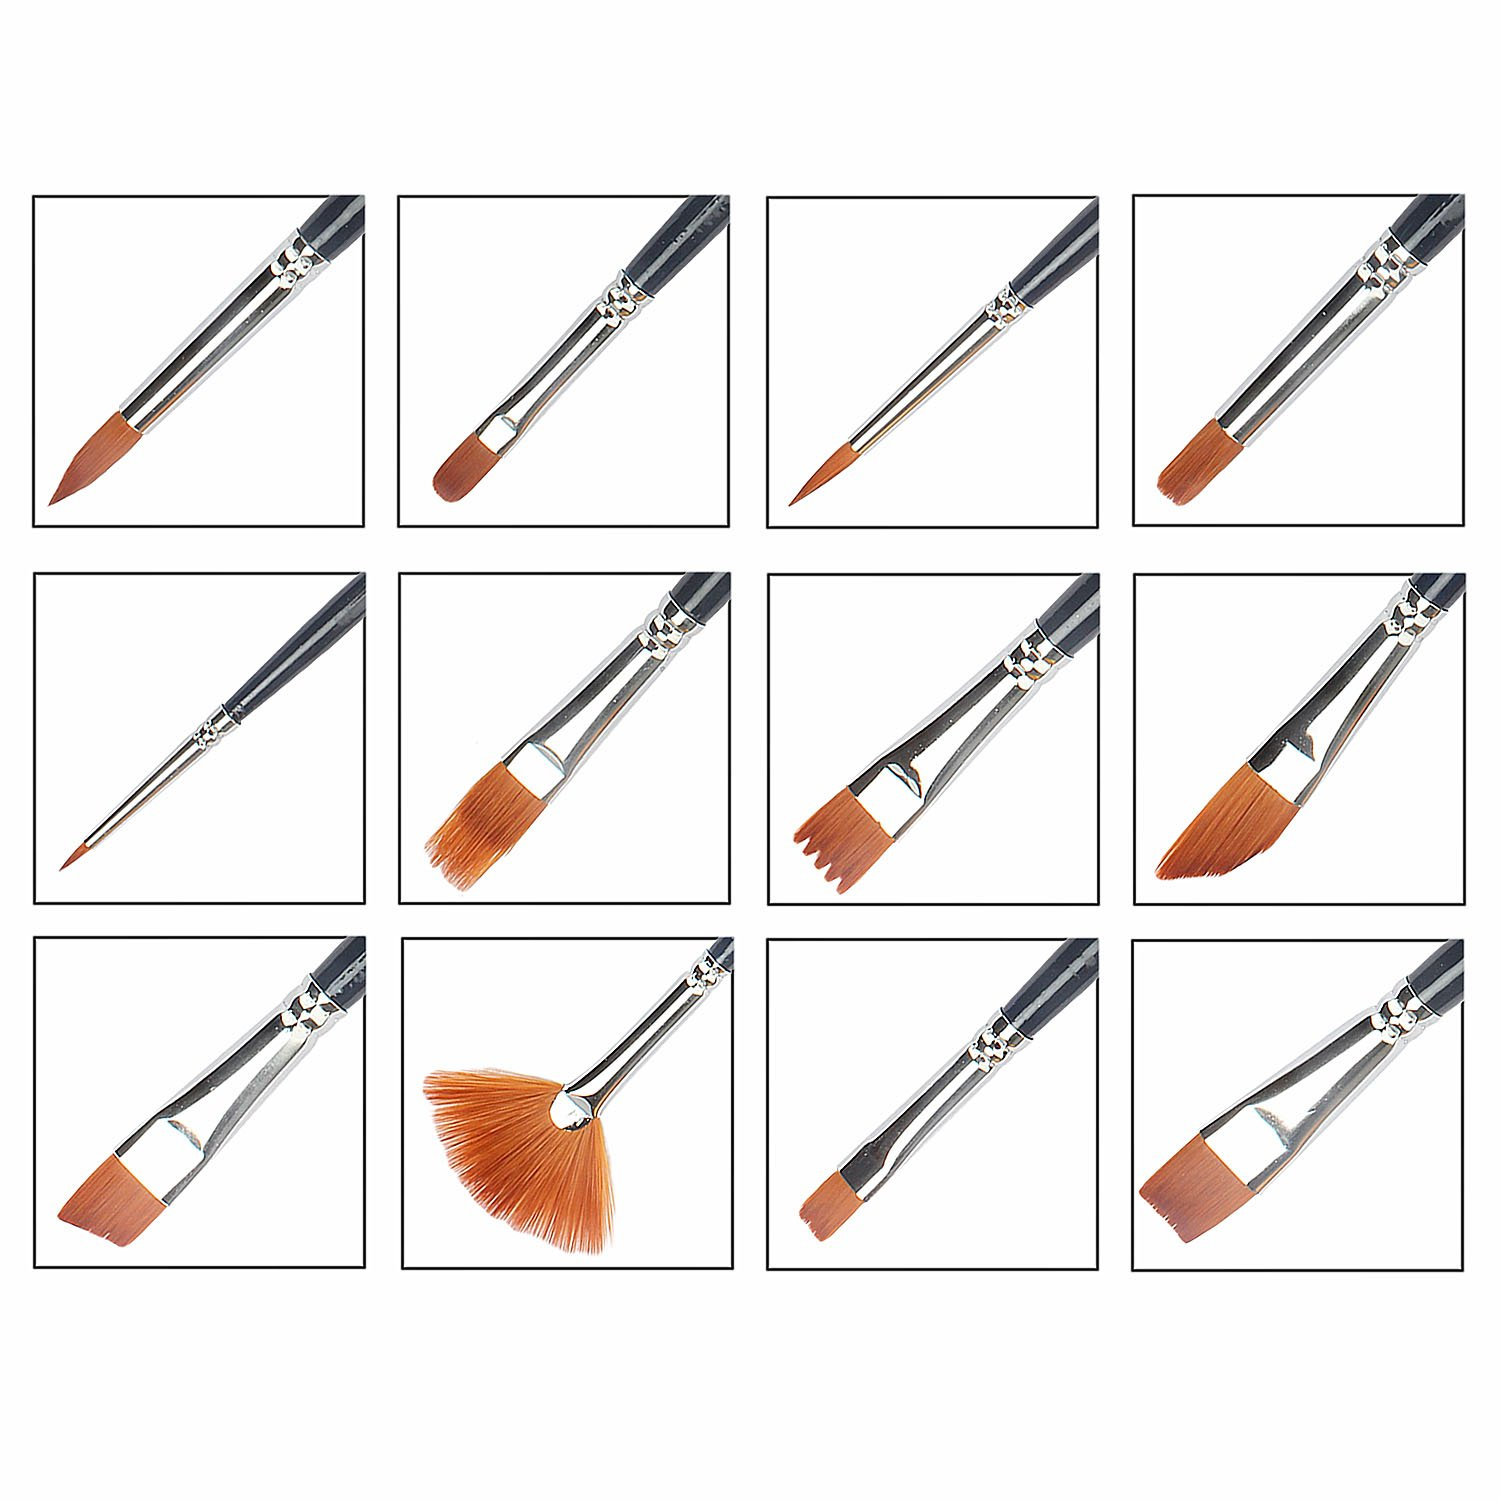 Paint Brush Set, Morkia 12pcs Round Pointed Tip Nylon Hair Artist Acrylic Brushes and 2pcs Paint Tray Palettes for Watercolor Acrylics, Oil Painting Supply